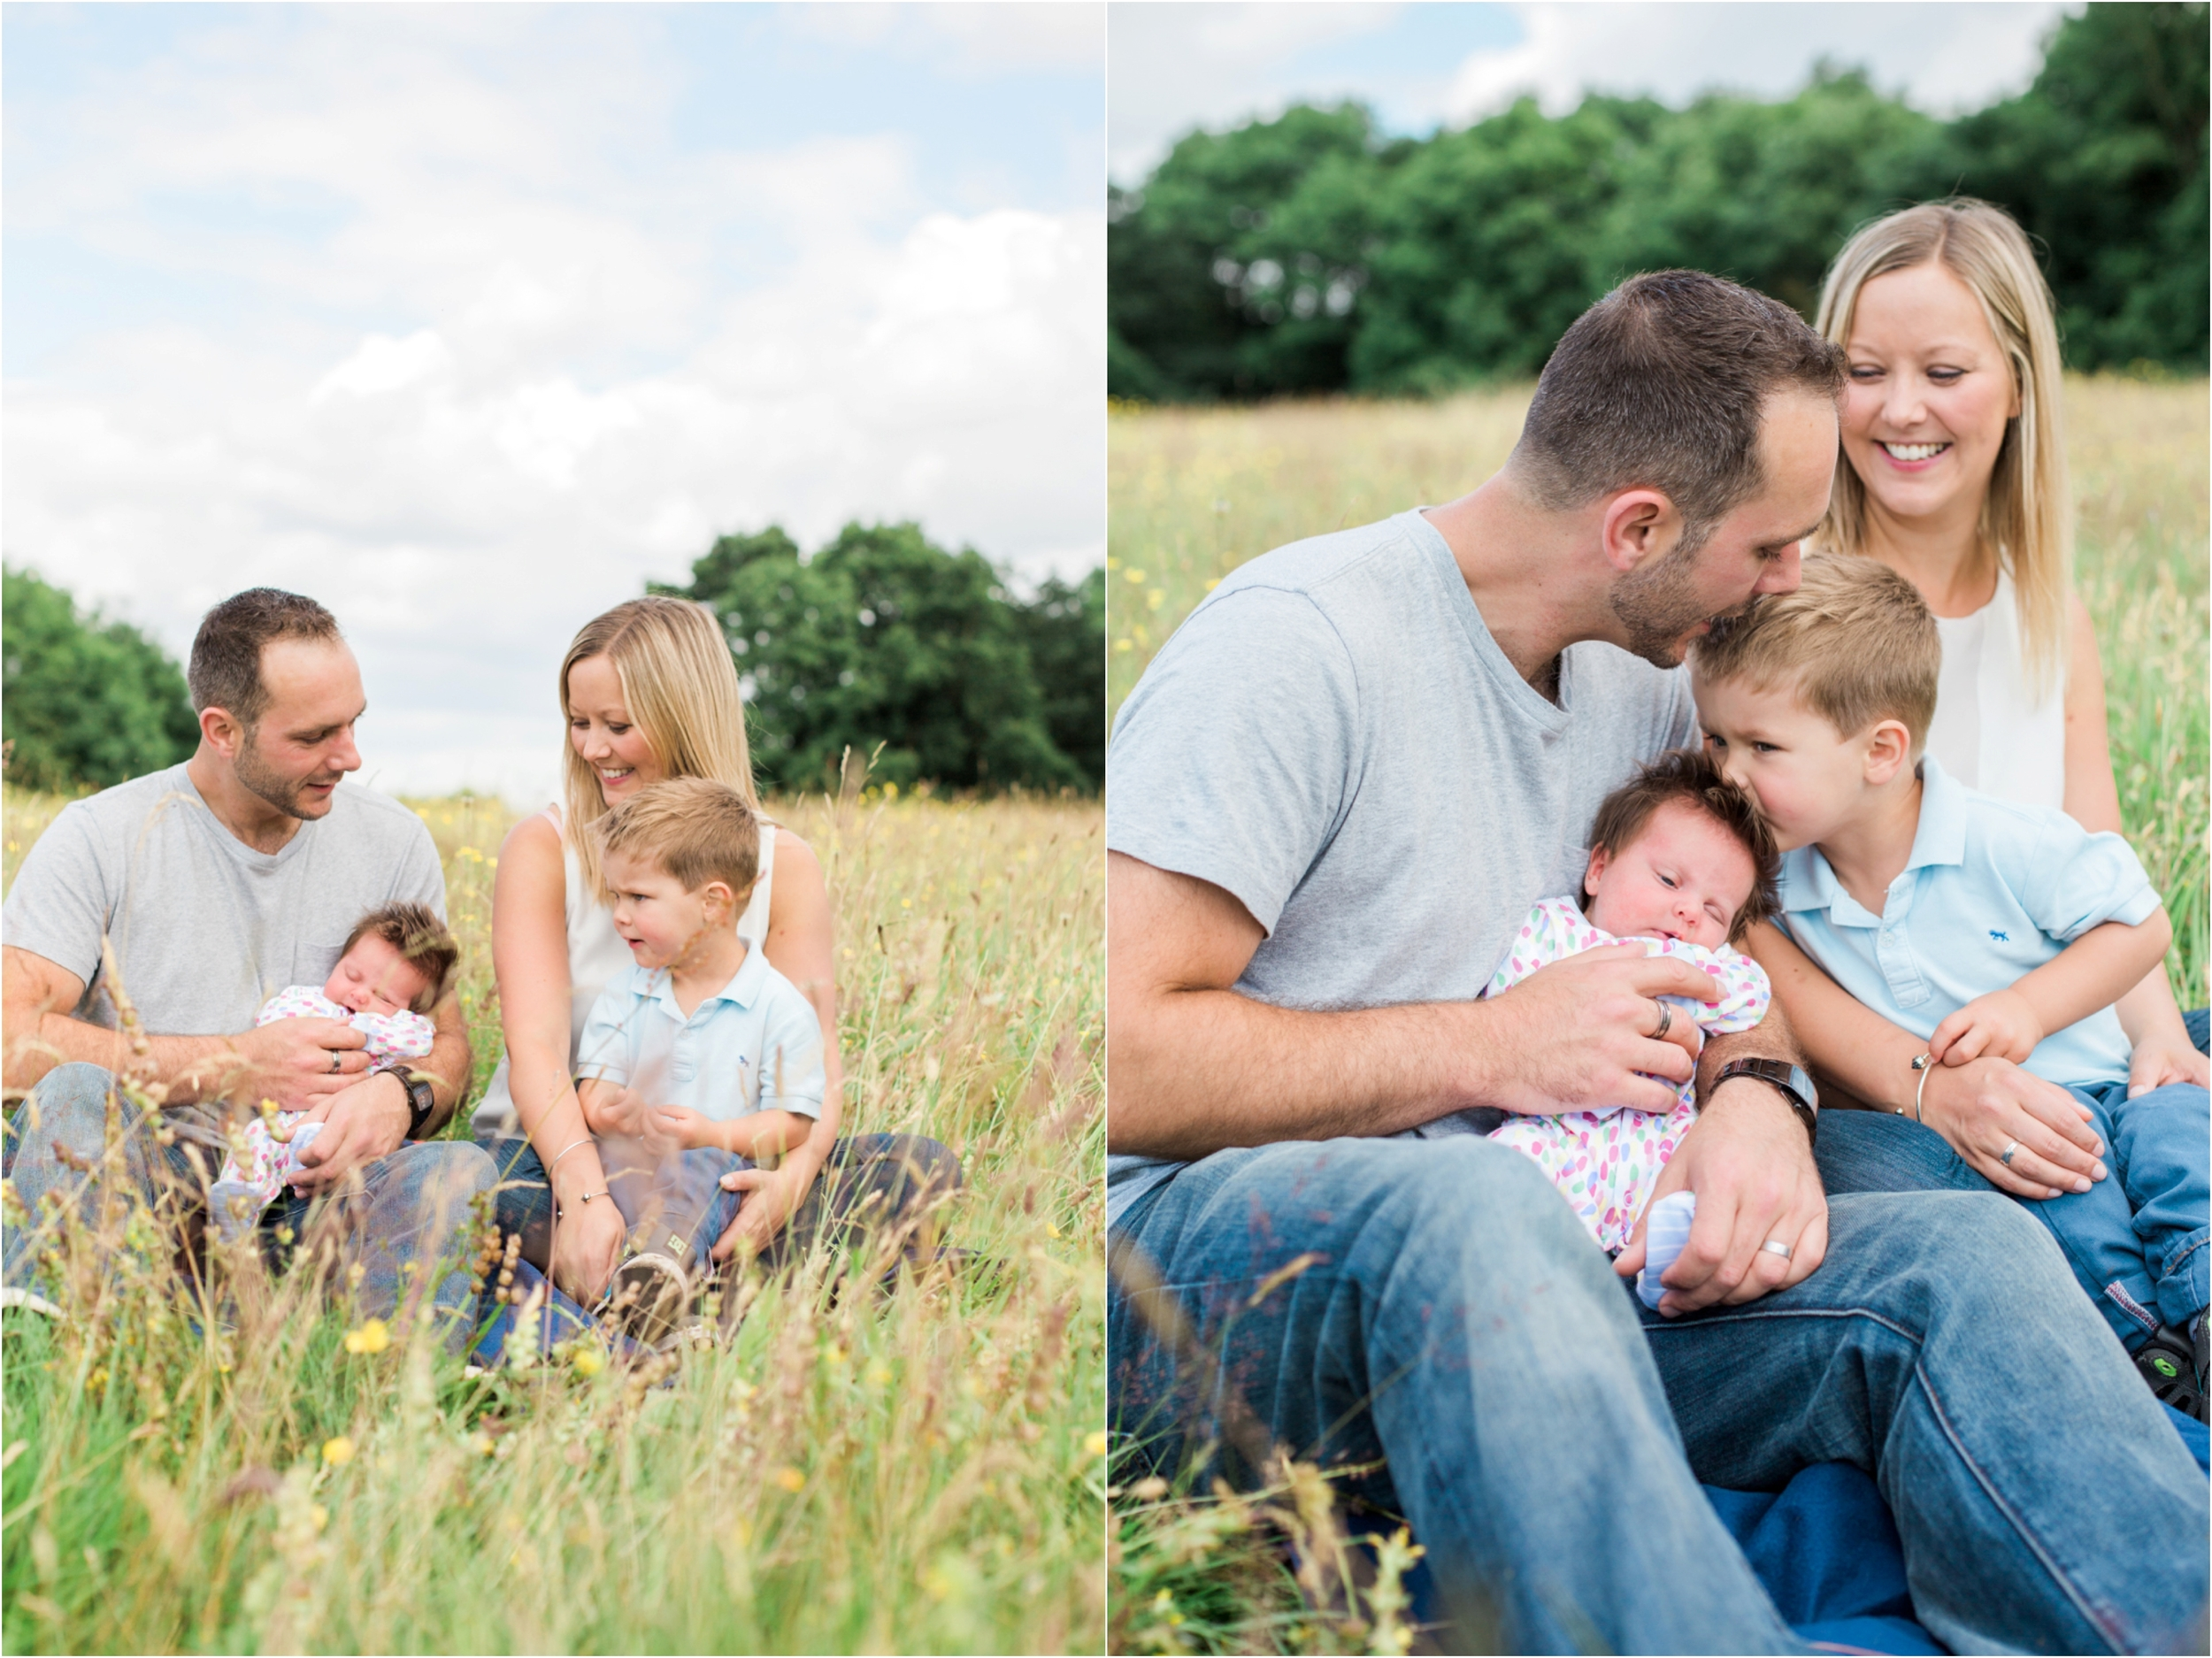 034Sophie Evans Photography, Warwickshire Family Photography, Tailor Family.jpg